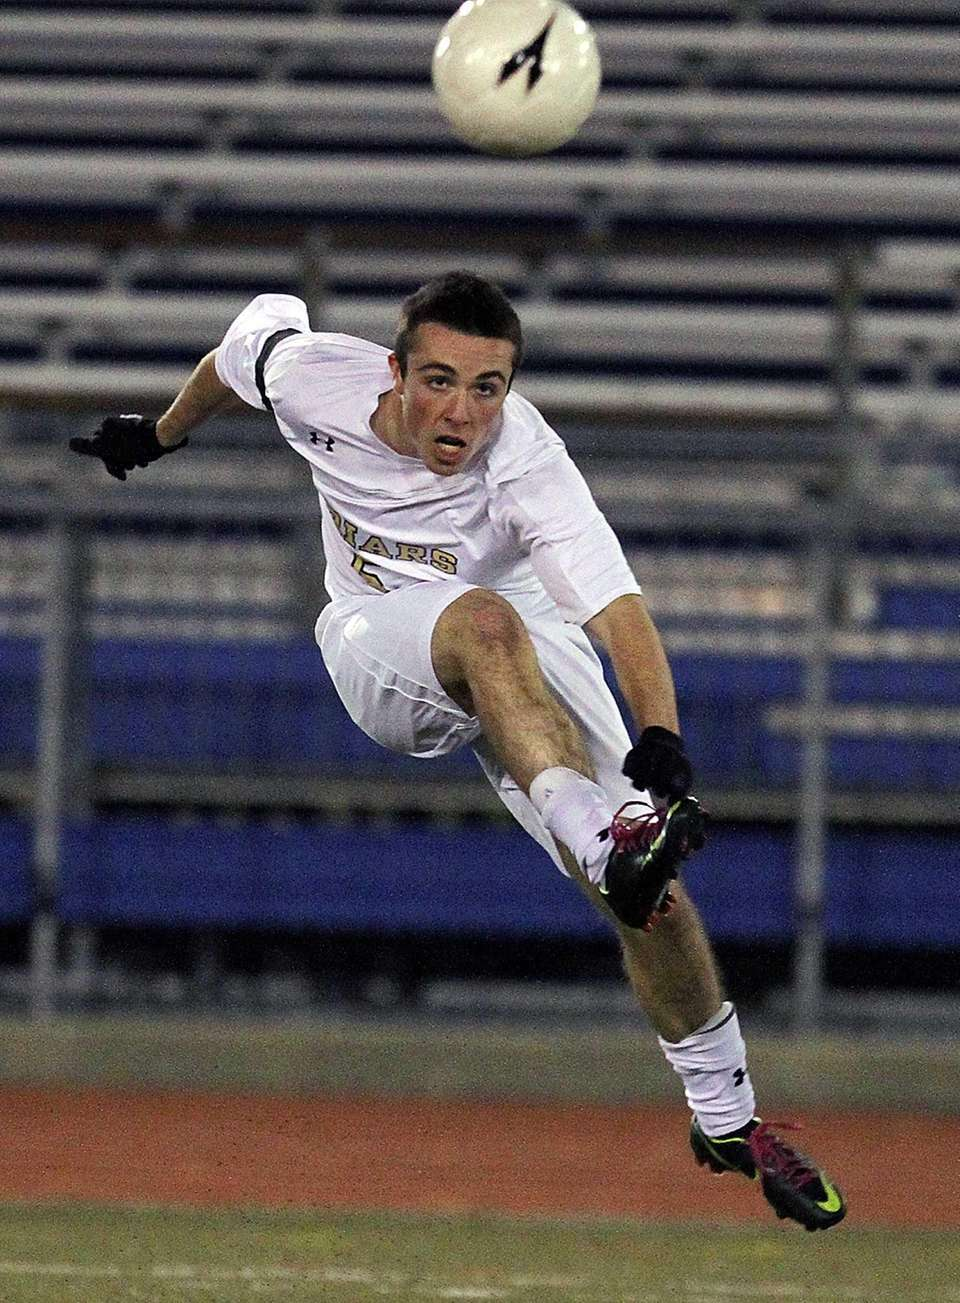 St. Anthony's Brendan Reardon clears the ball during